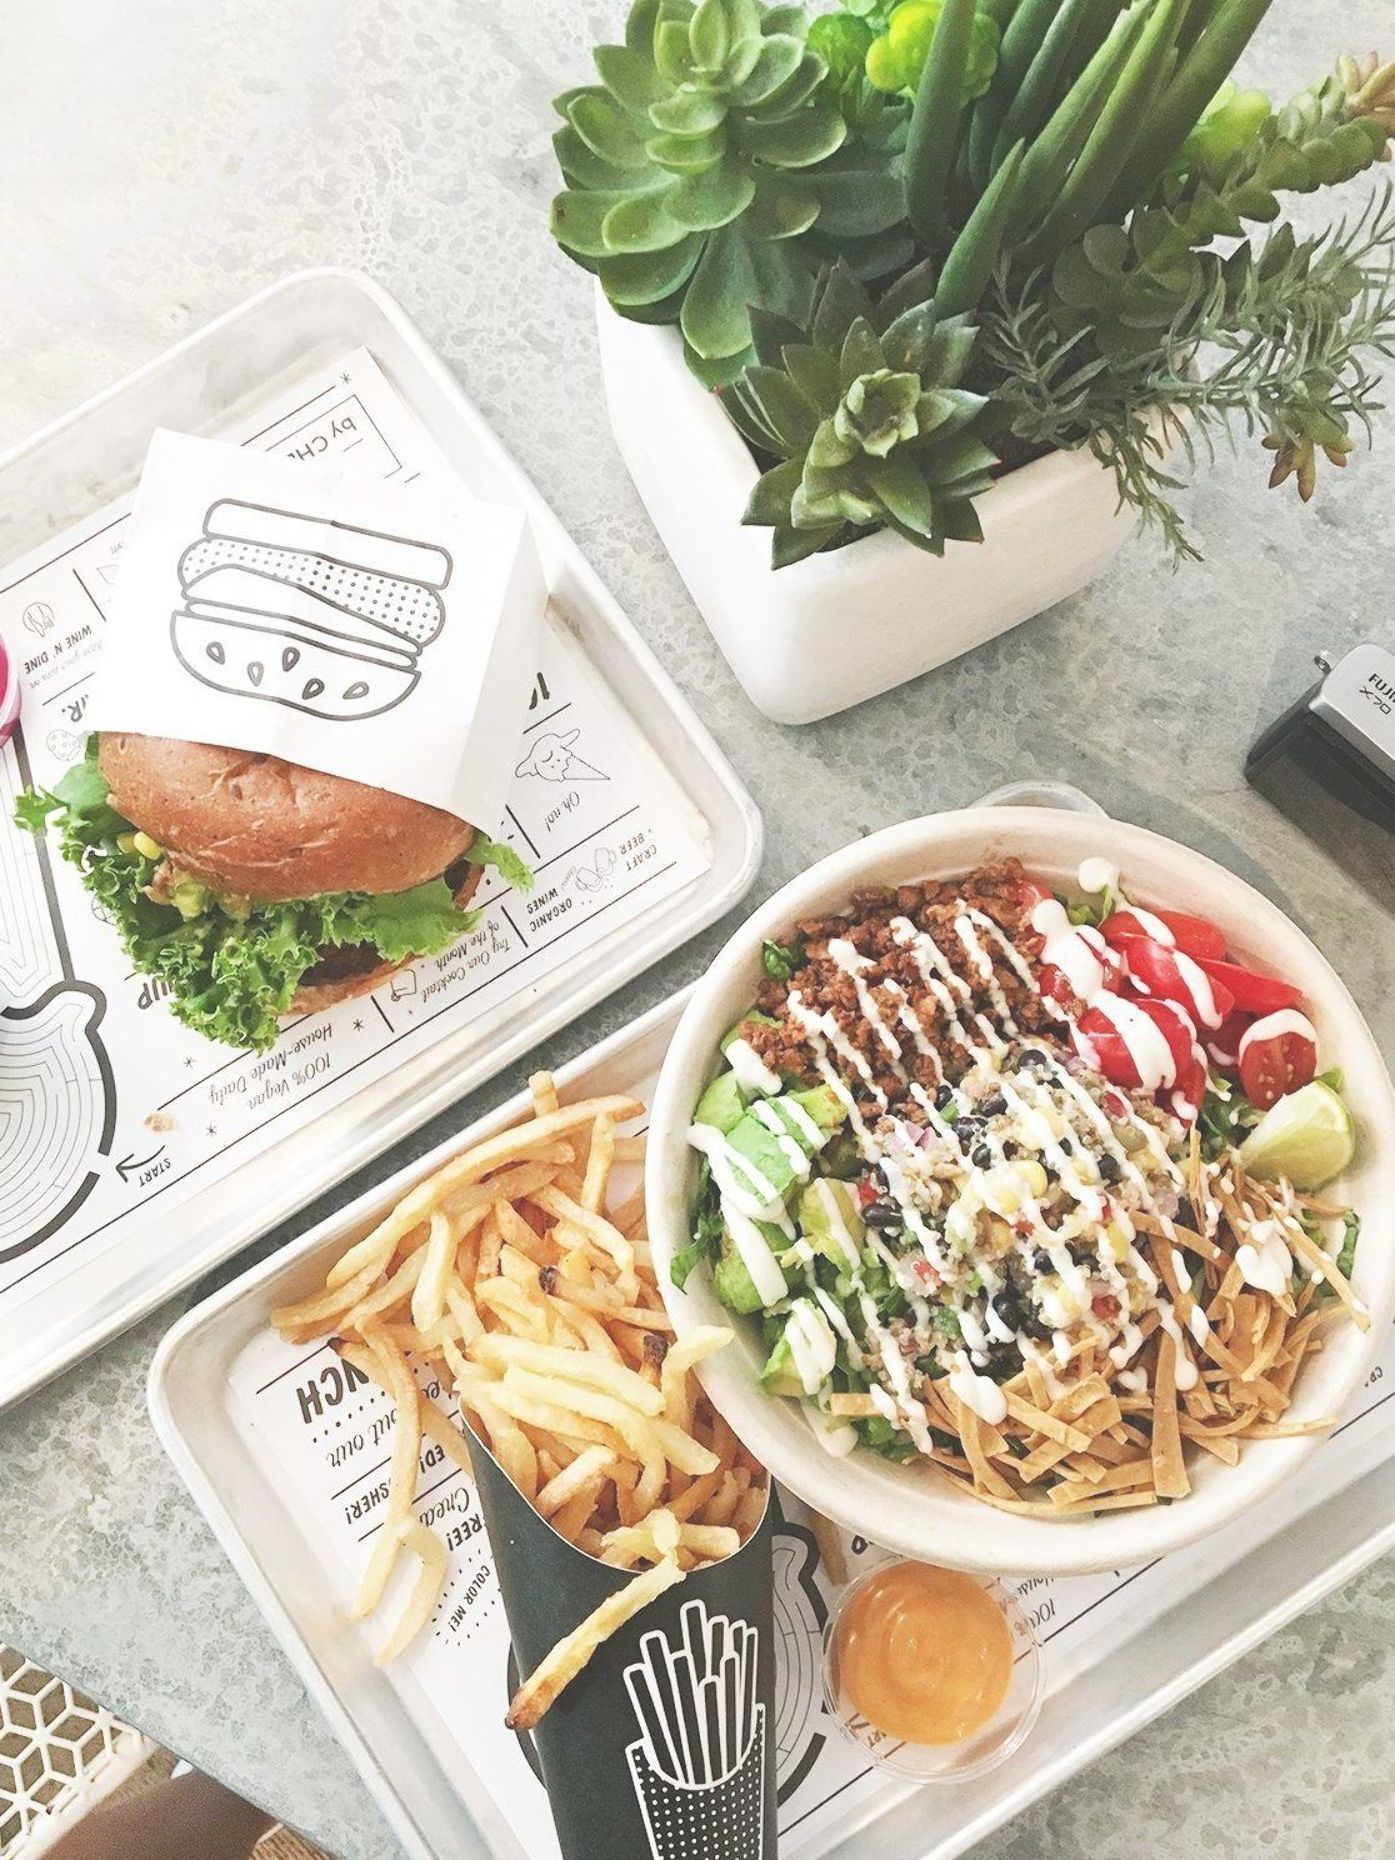 Are You Looking For Vegan Food In Nyc Here Is The Ultimate Vegan Guide For Nyc S Most Popular Borough Manha Vegan Guide Vegan Friendly Restaurants Vegan Nyc